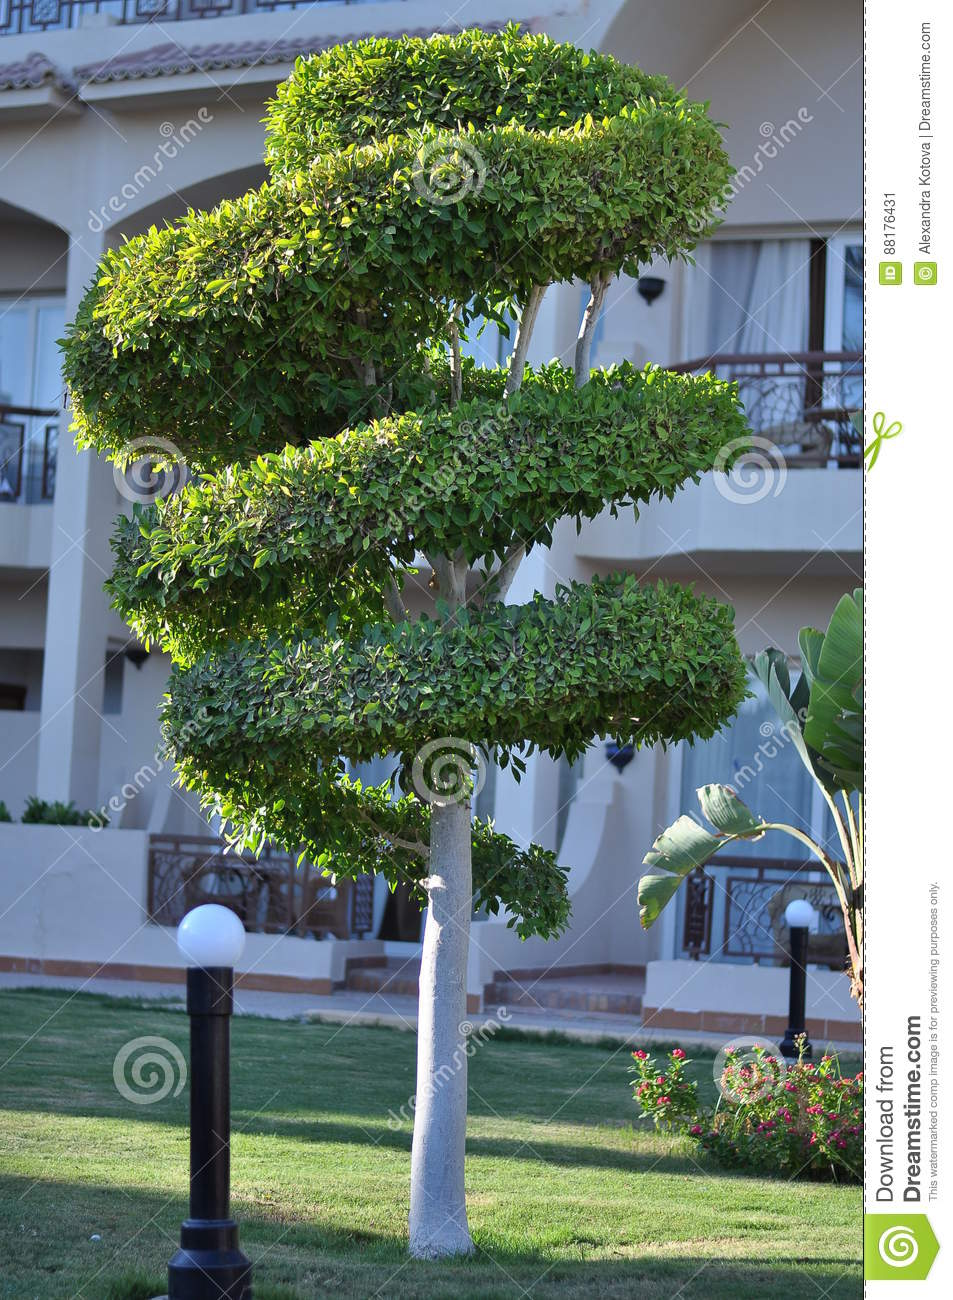 Design Green Landscapes: Topiary Spiral Formed Tree Stock Image. Image Of Shaped